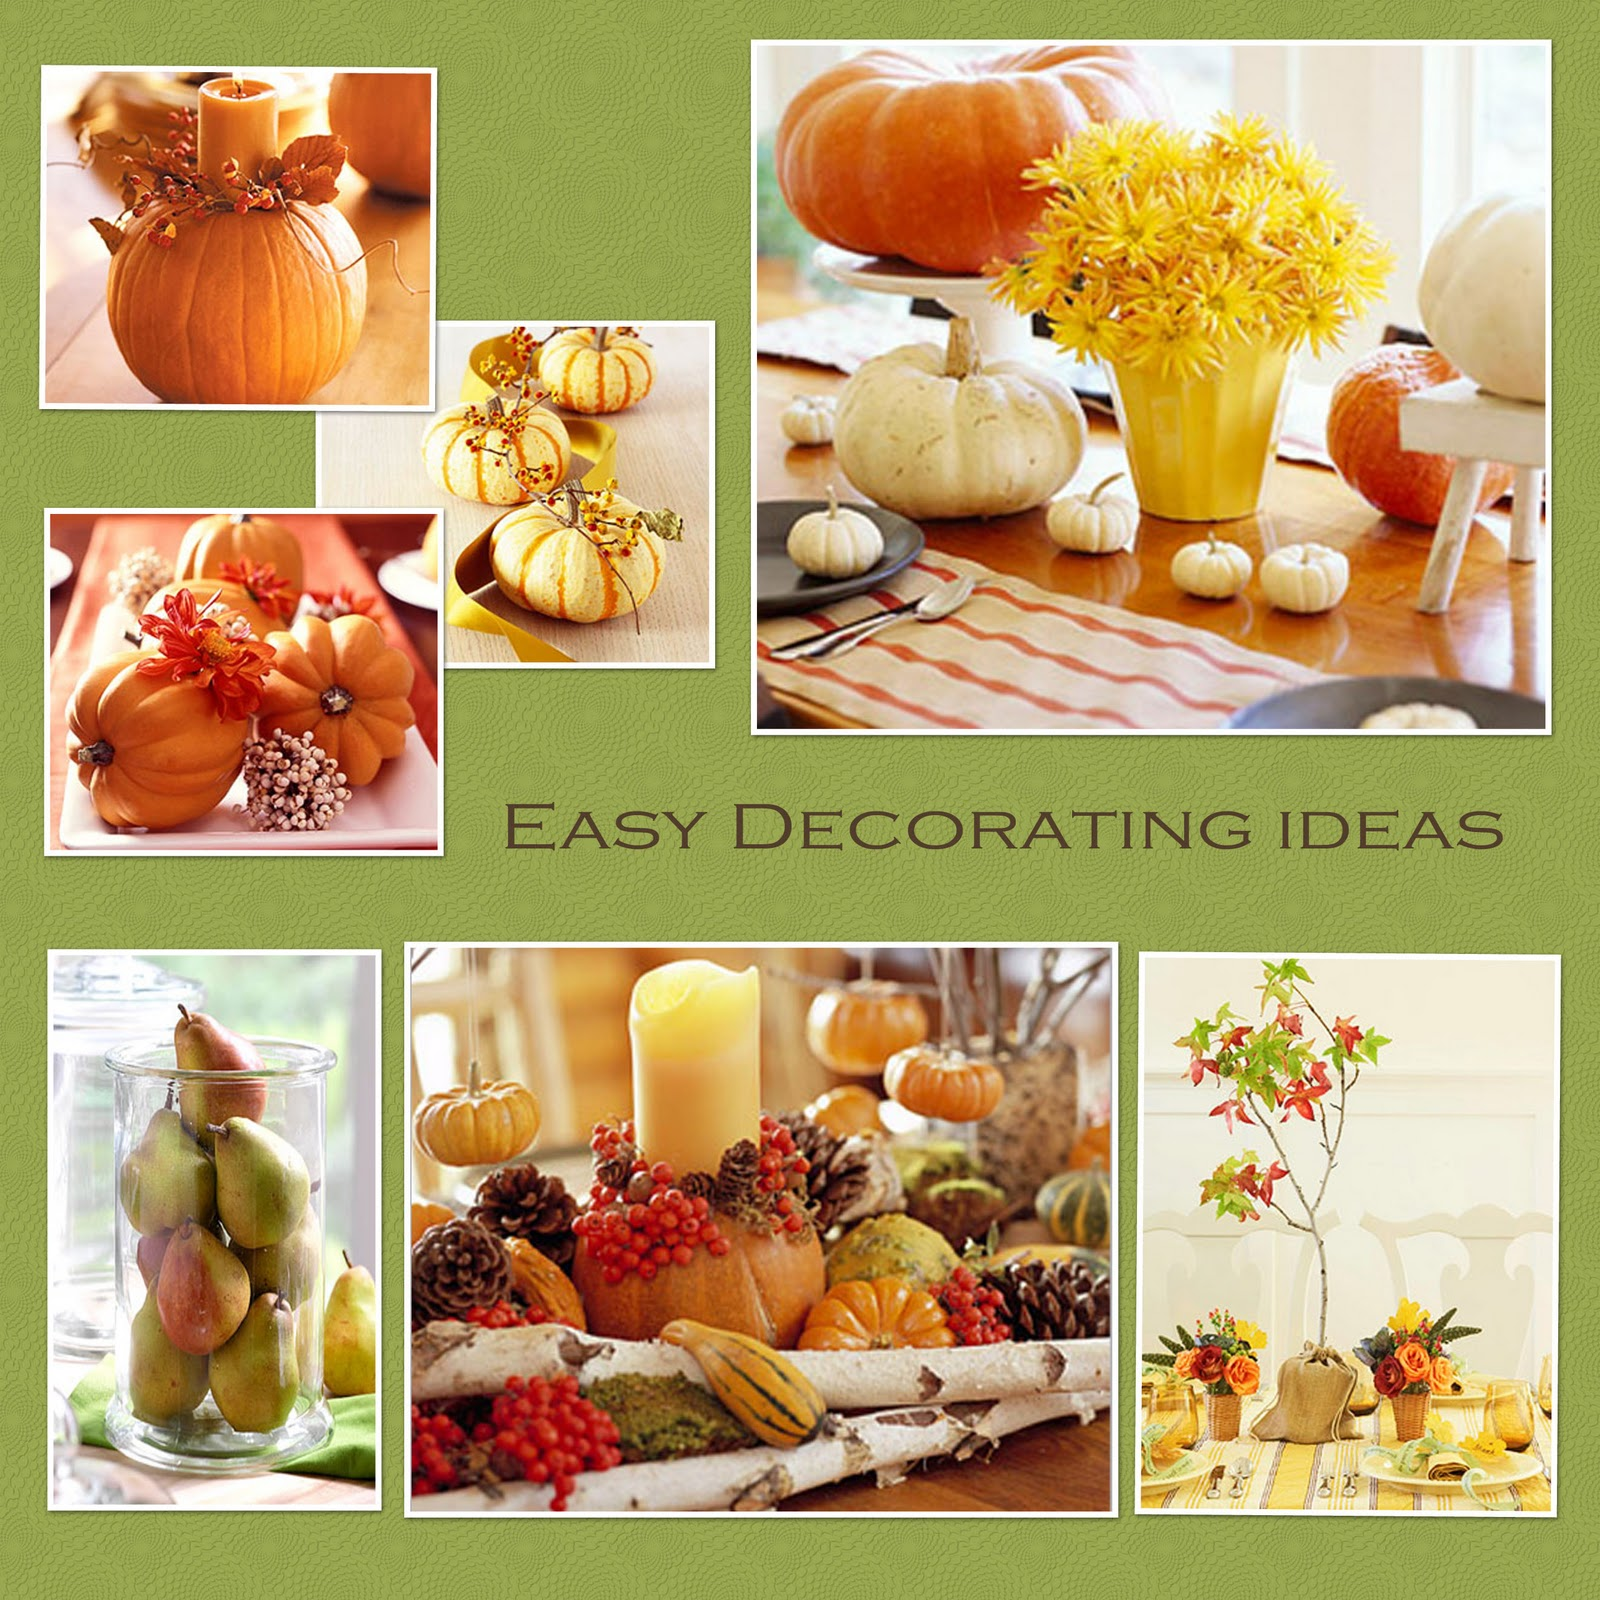 Decoration ideas for thanksgiving party - Decoration Ideas